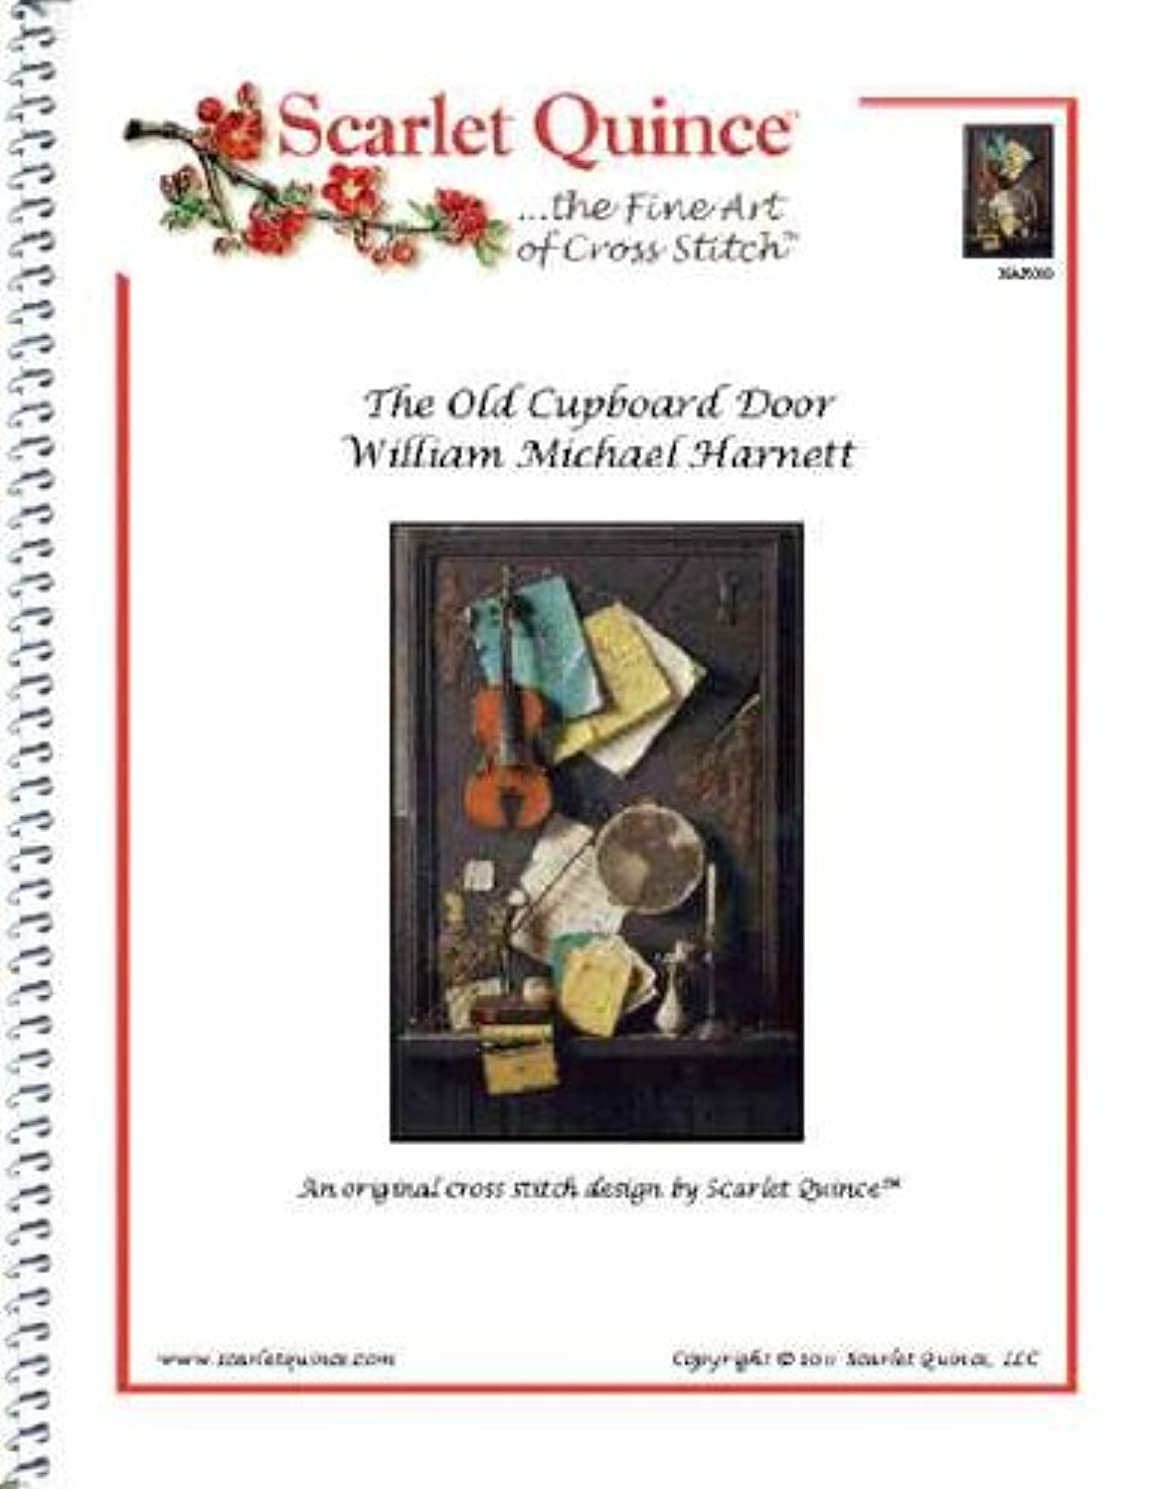 Scarlet Quince HAR005 The Old Cupboard Door by William Michael Harnett Counted Cross Stitch Chart, Regular Size Symbols